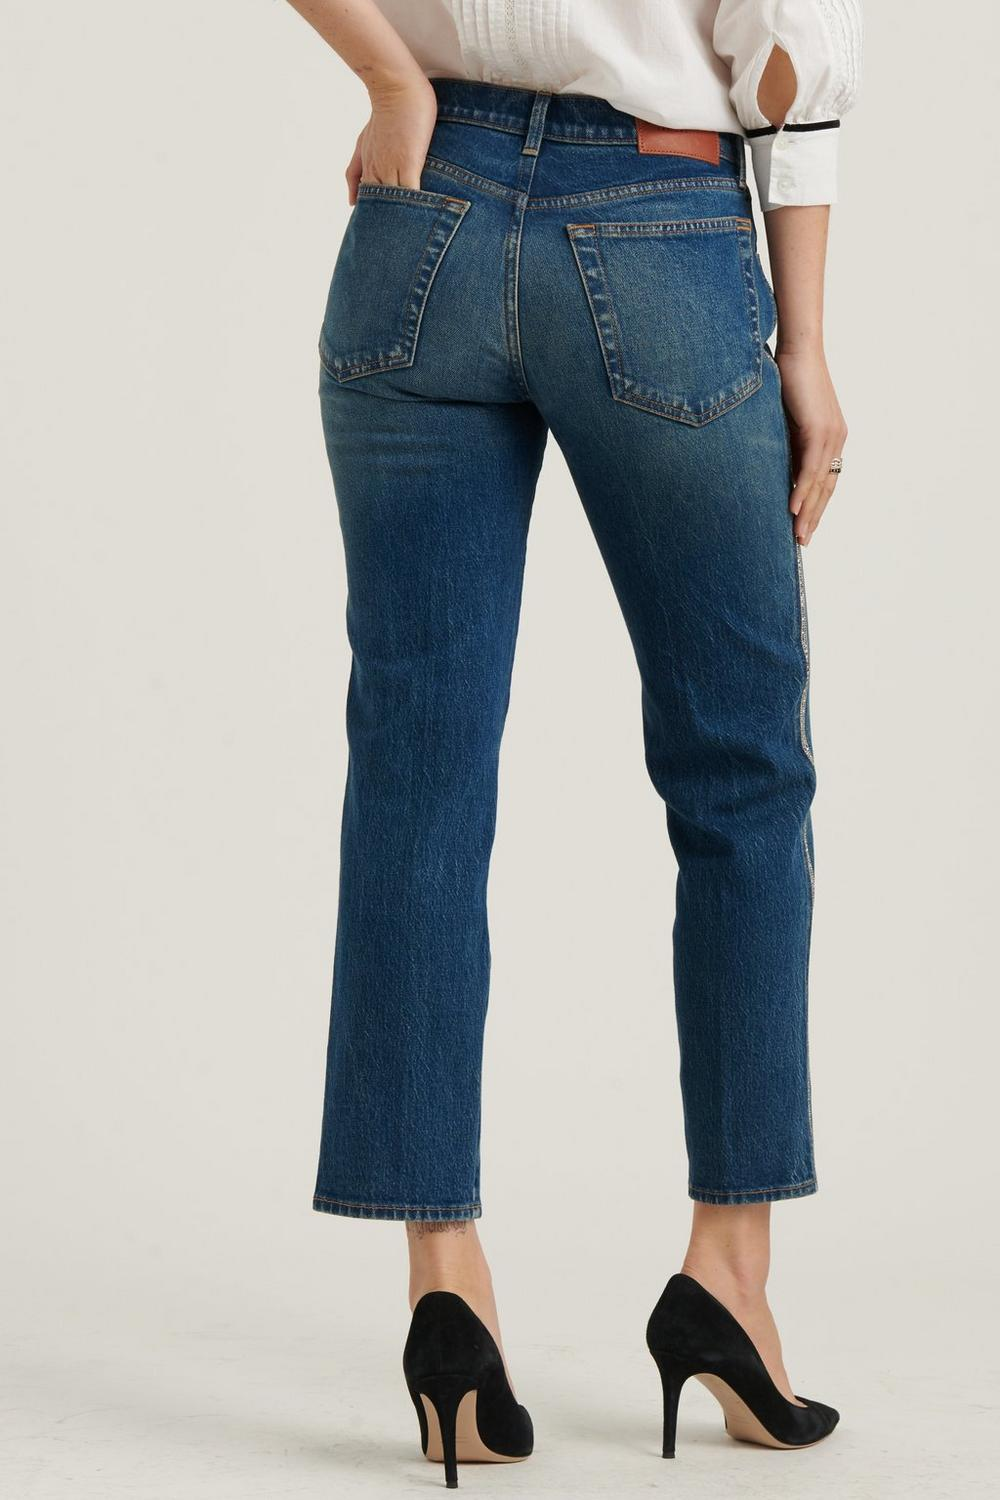 MID RISE AUTHENTIC STRAIGHT JEAN, image 6